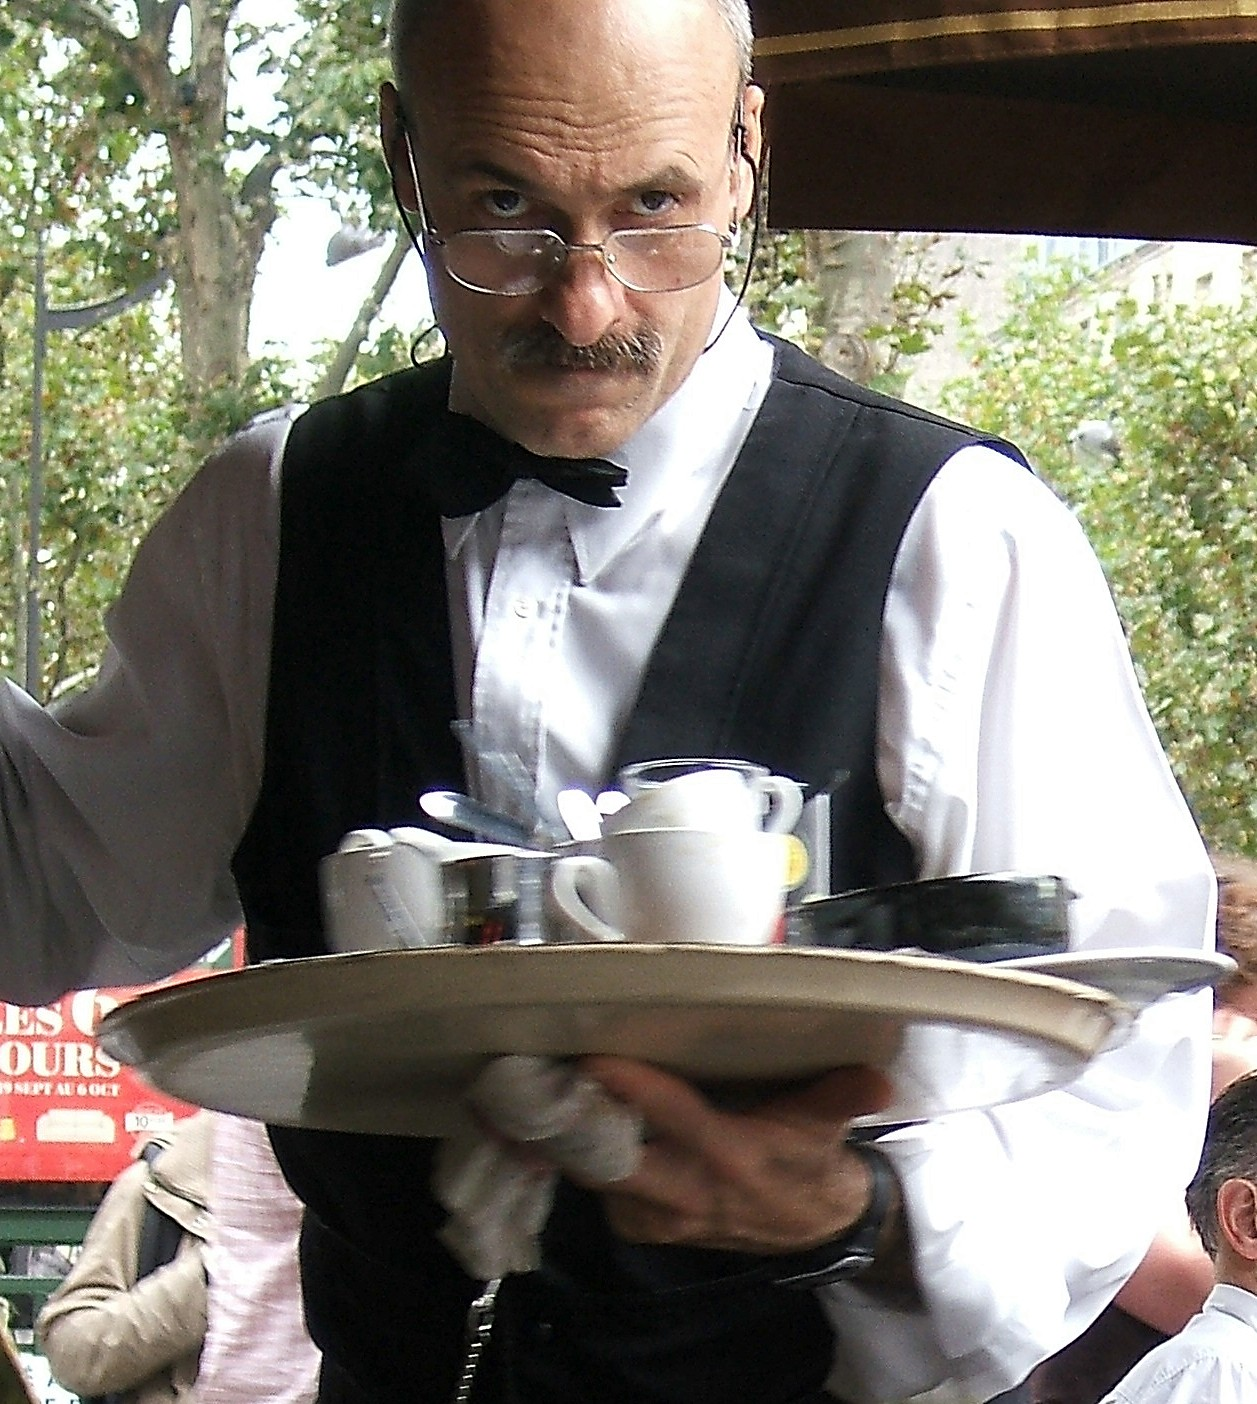 waiter_Christina Campisi_Flickr